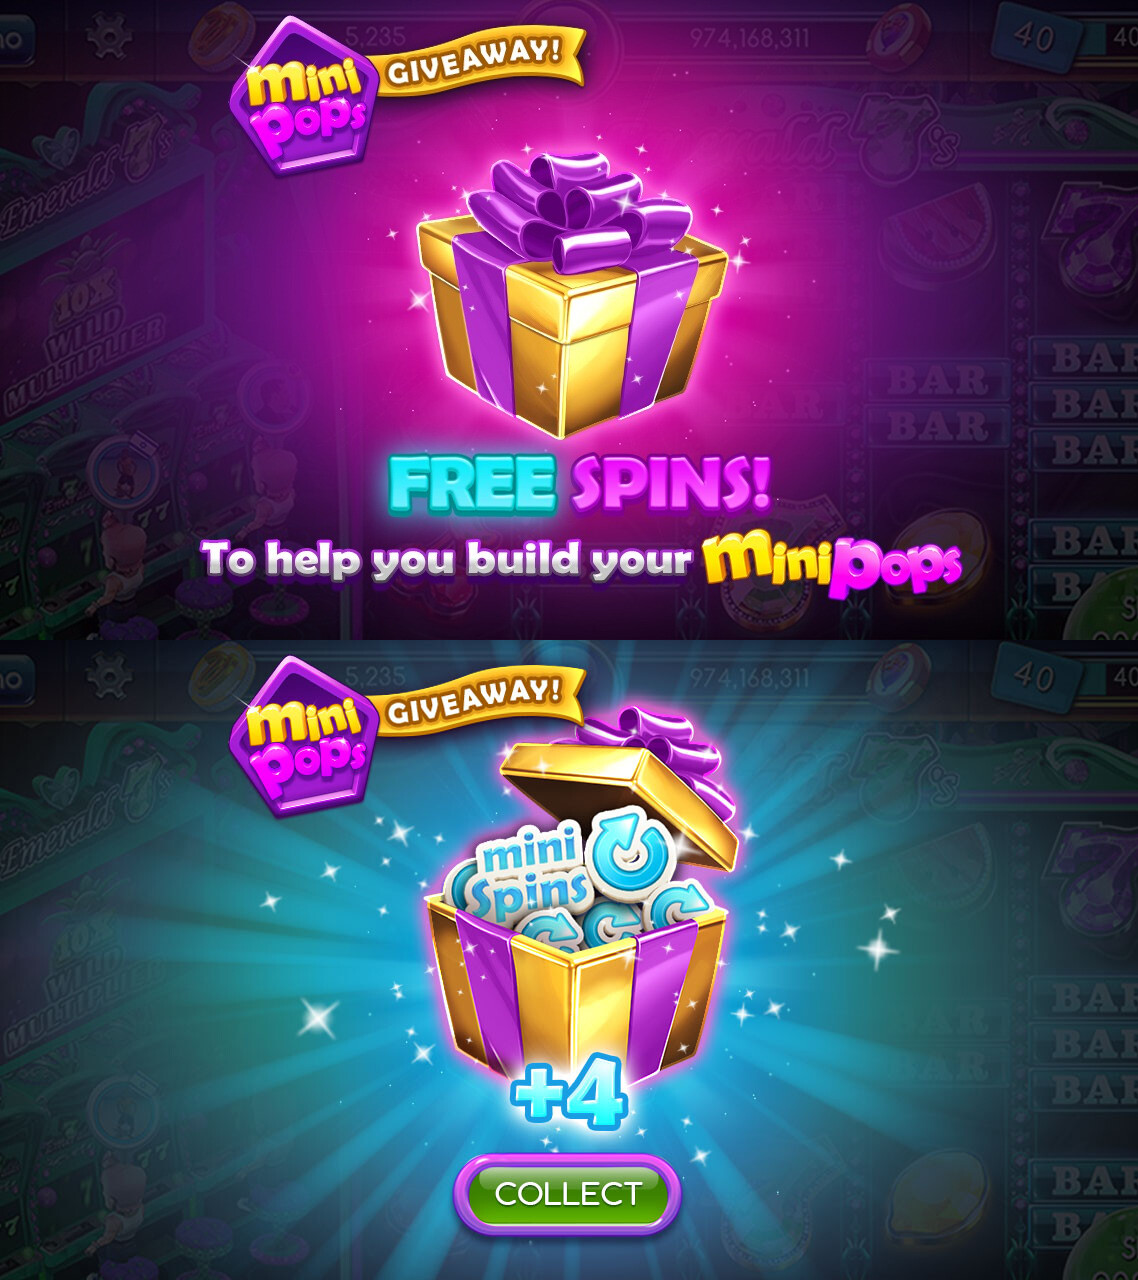 Free spins popup